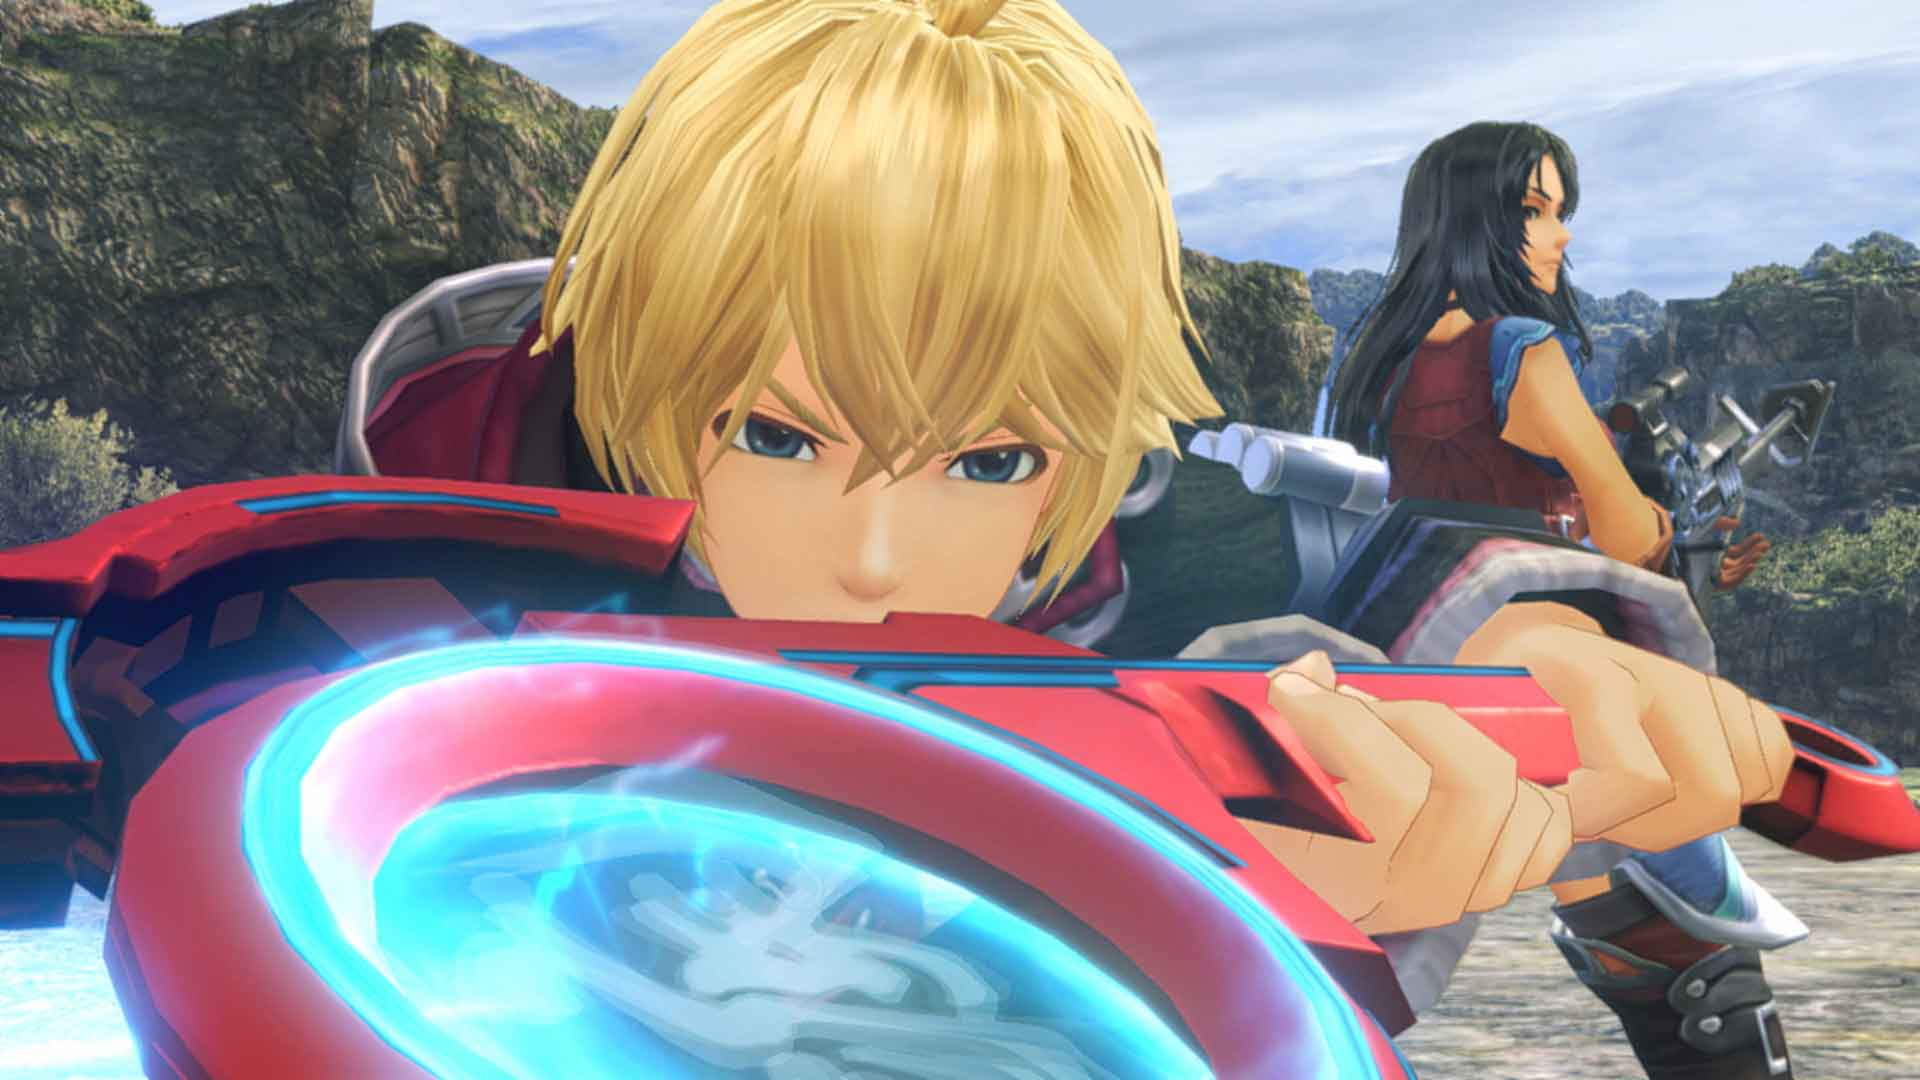 Game releases: Xenoblade Chronicles: Definitive Edition, Minecraft Dungeons, Mortal Kombat 11: Aftermath and more